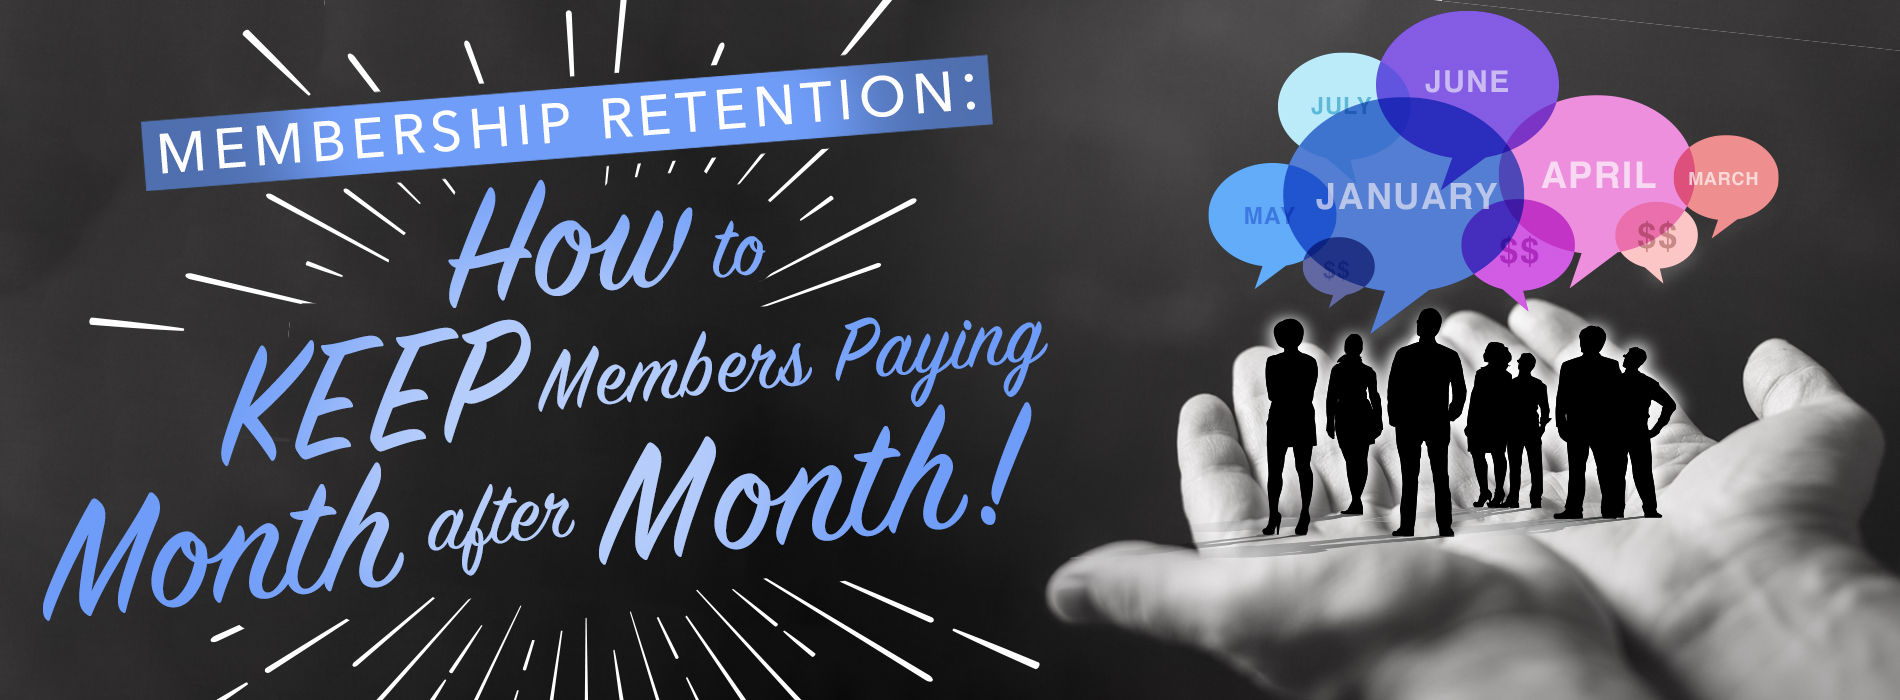 membership-retention